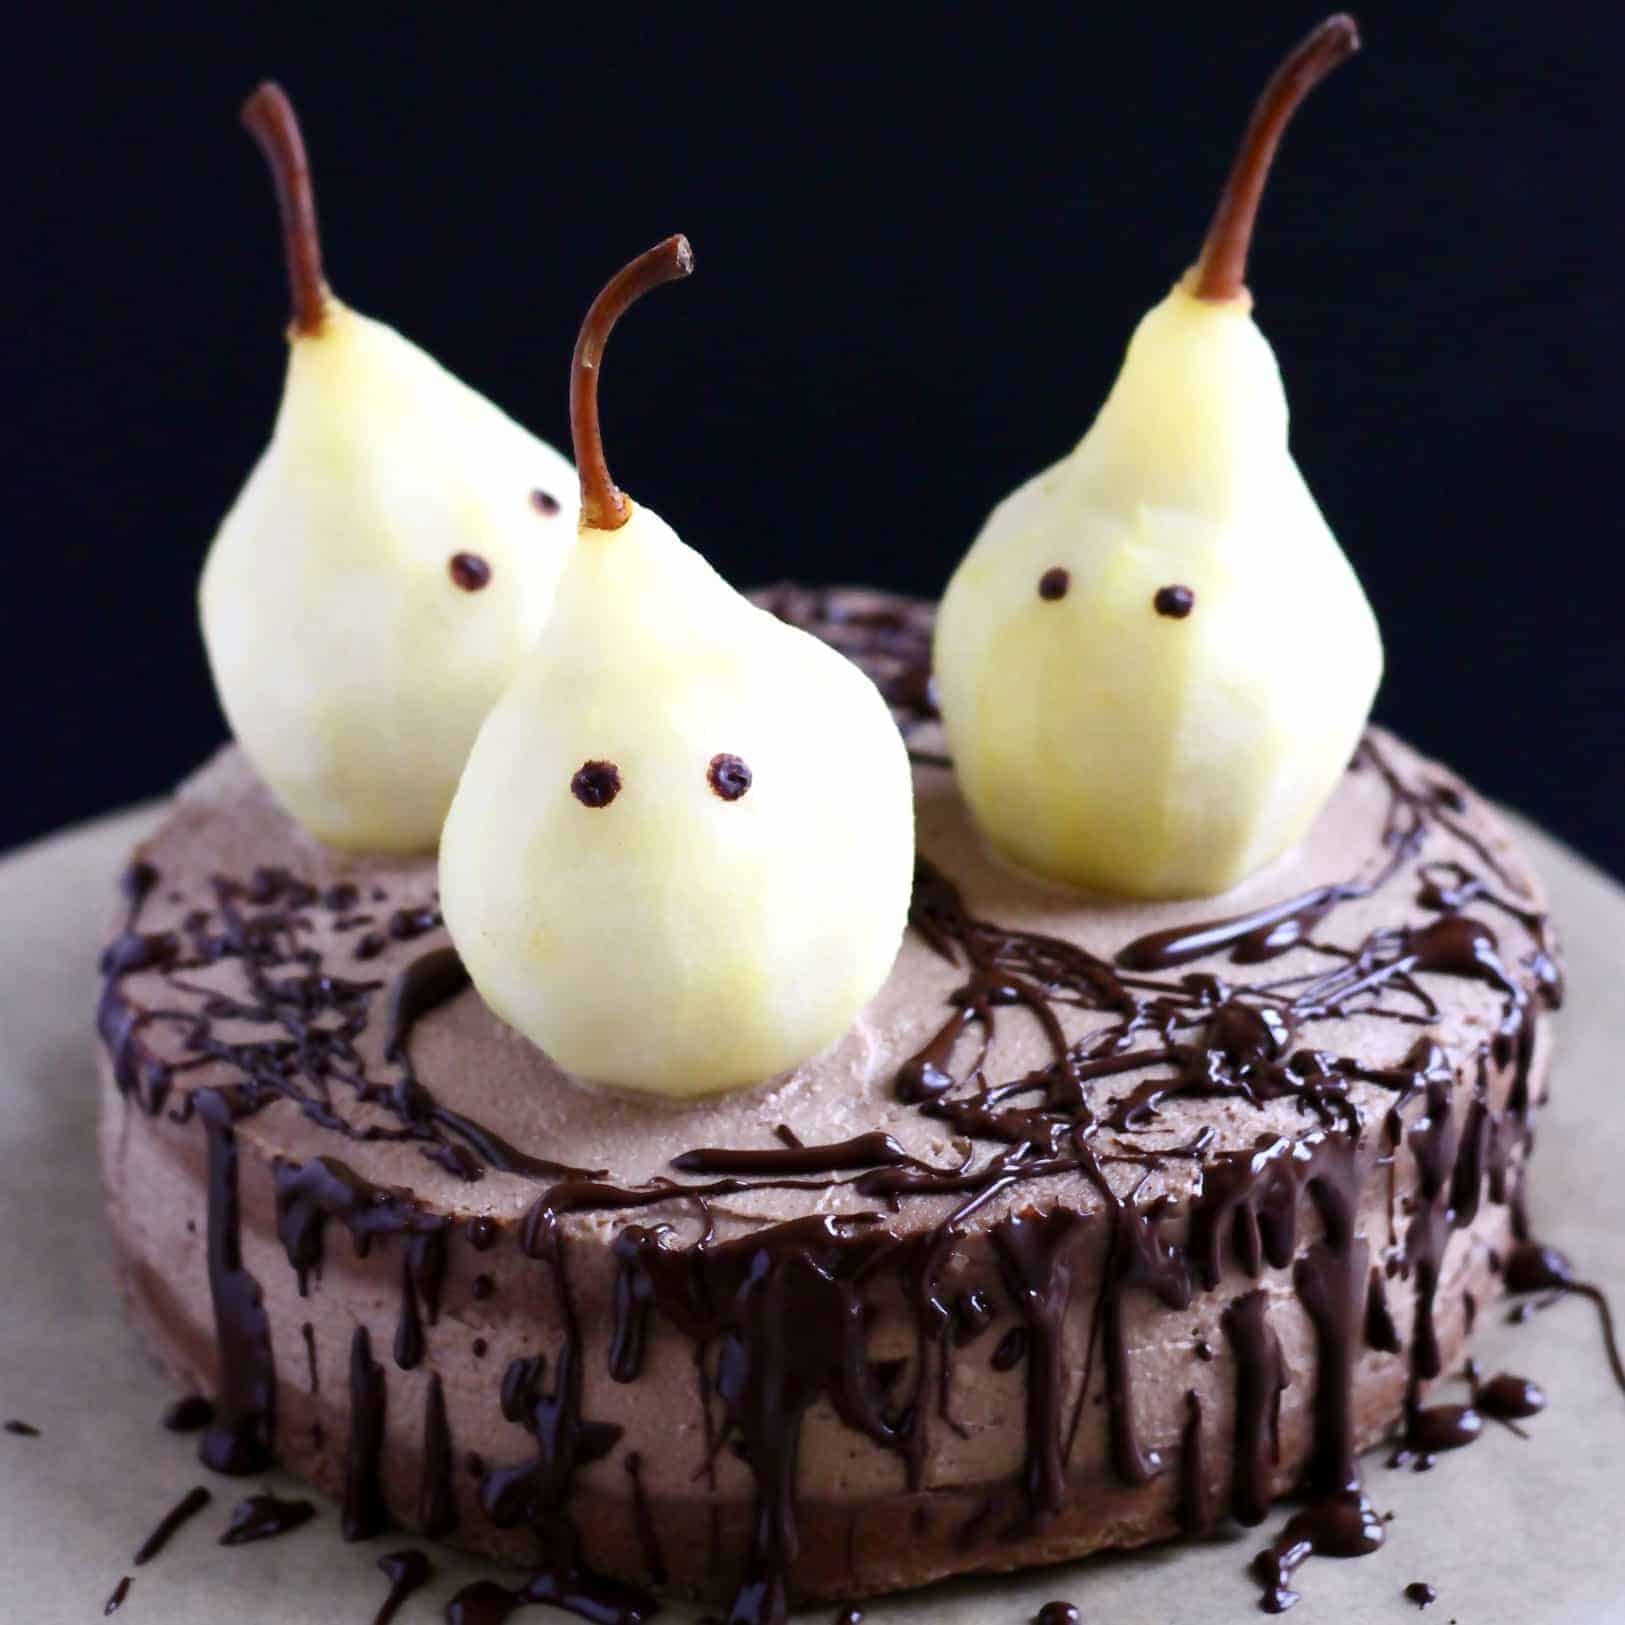 GLUTEN FREE VEGAN HALLOWEEN GHOST CAKE halloween food ideas